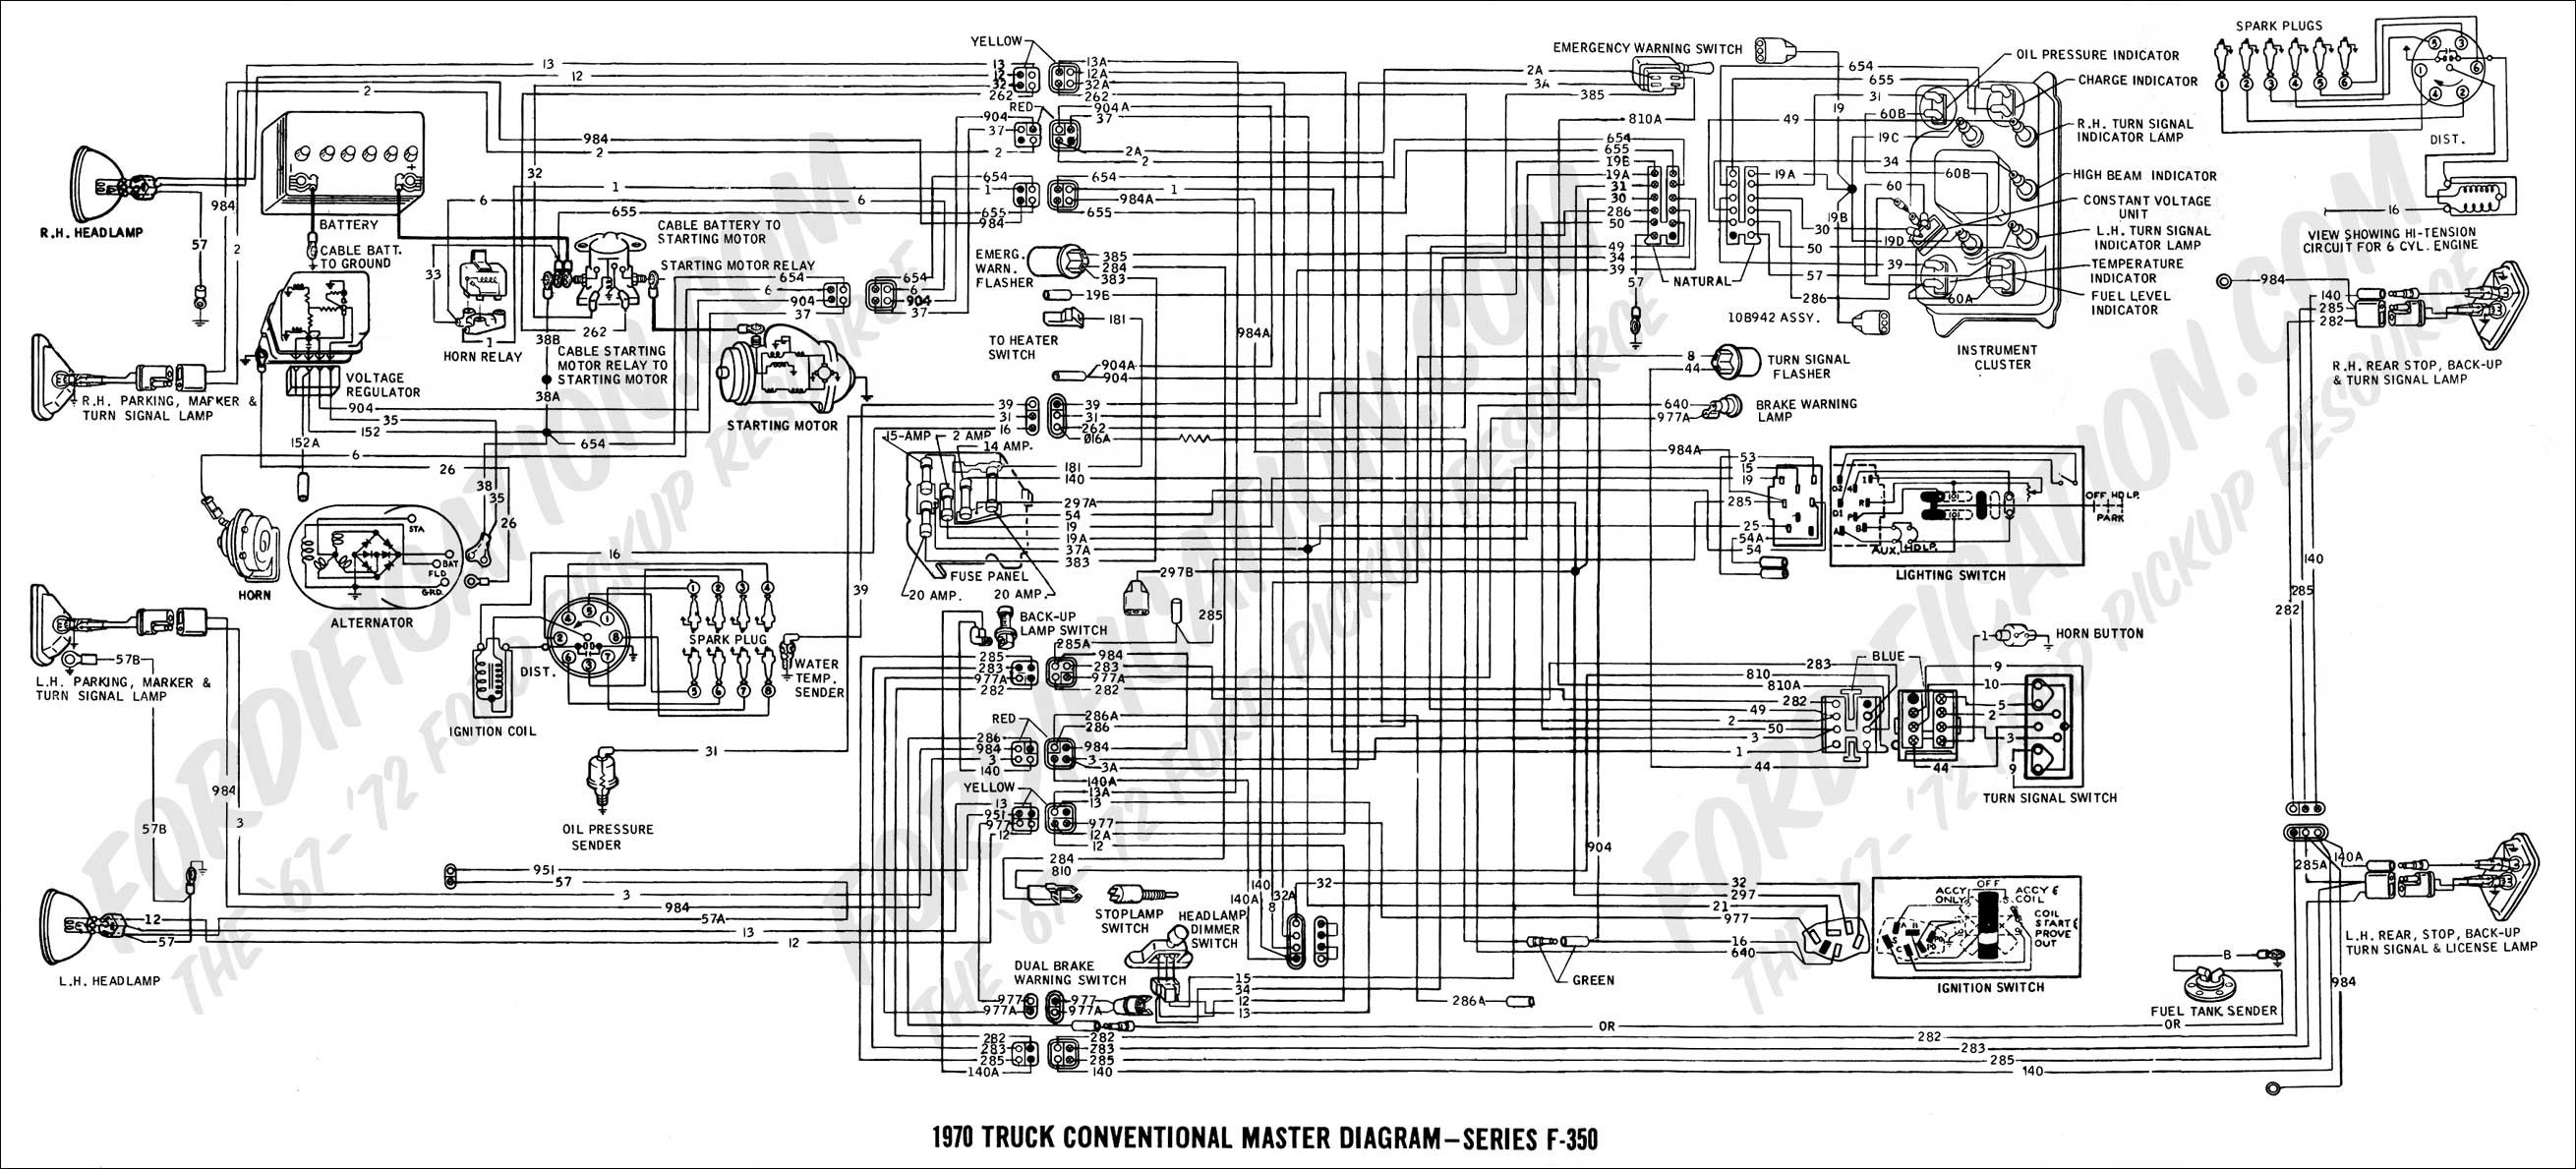 1996 ford F250 Tail Light Wiring Diagram ford Transit Wiring Diagram 96 1 Wiring Diagrams Konsult Of 1996 ford F250 Tail Light Wiring Diagram 7 3l Wiring Schematic Printable Very Handy Diesel forum